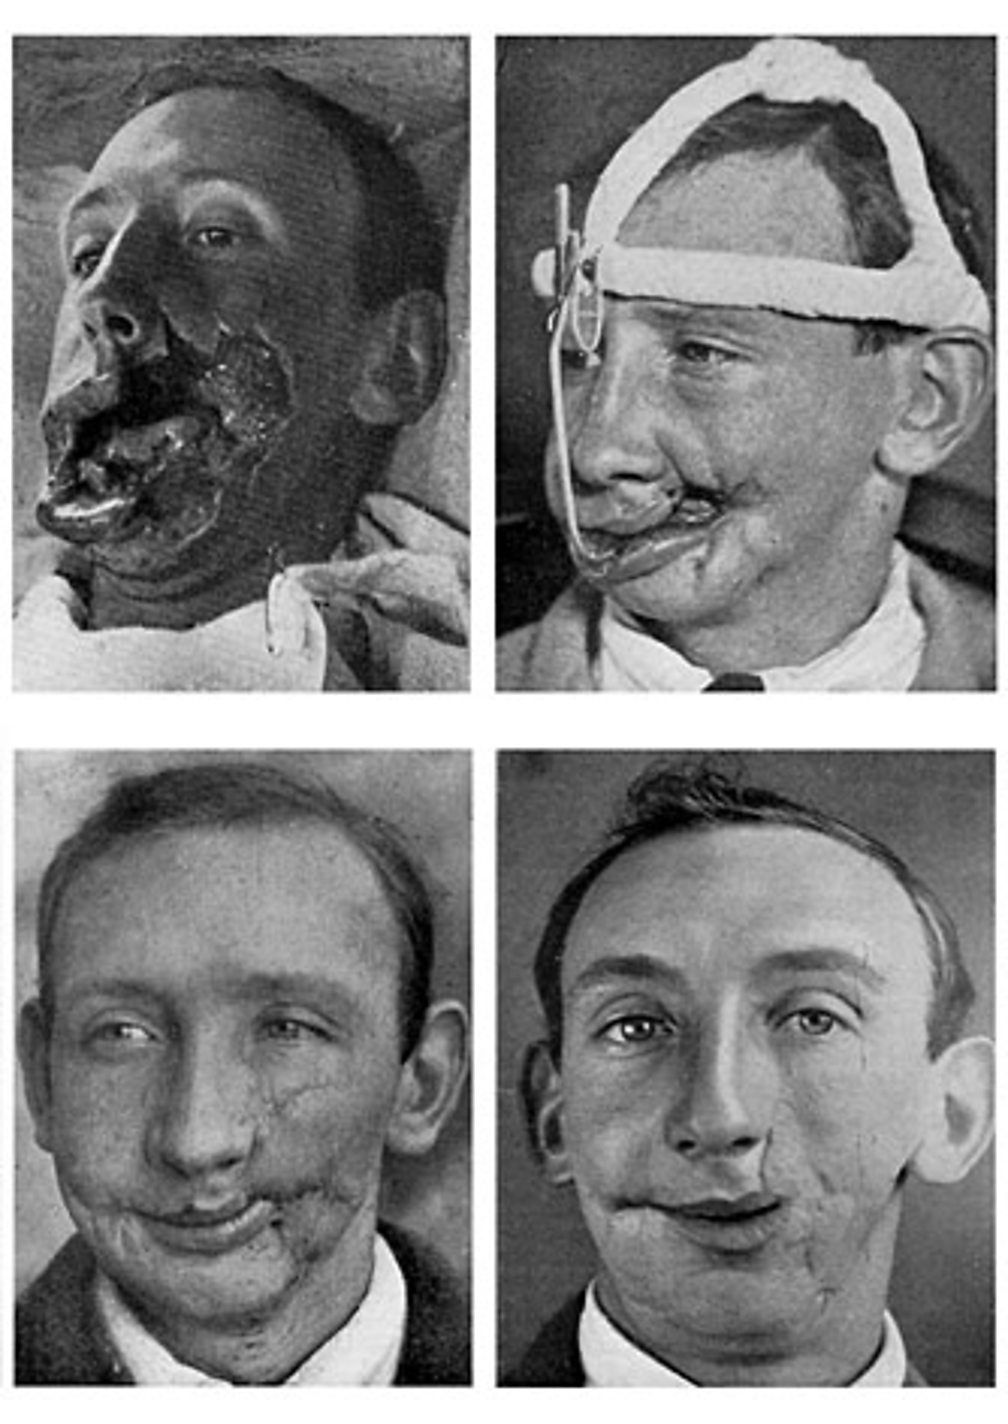 American academy of facial plastic and reconstructive consider, that